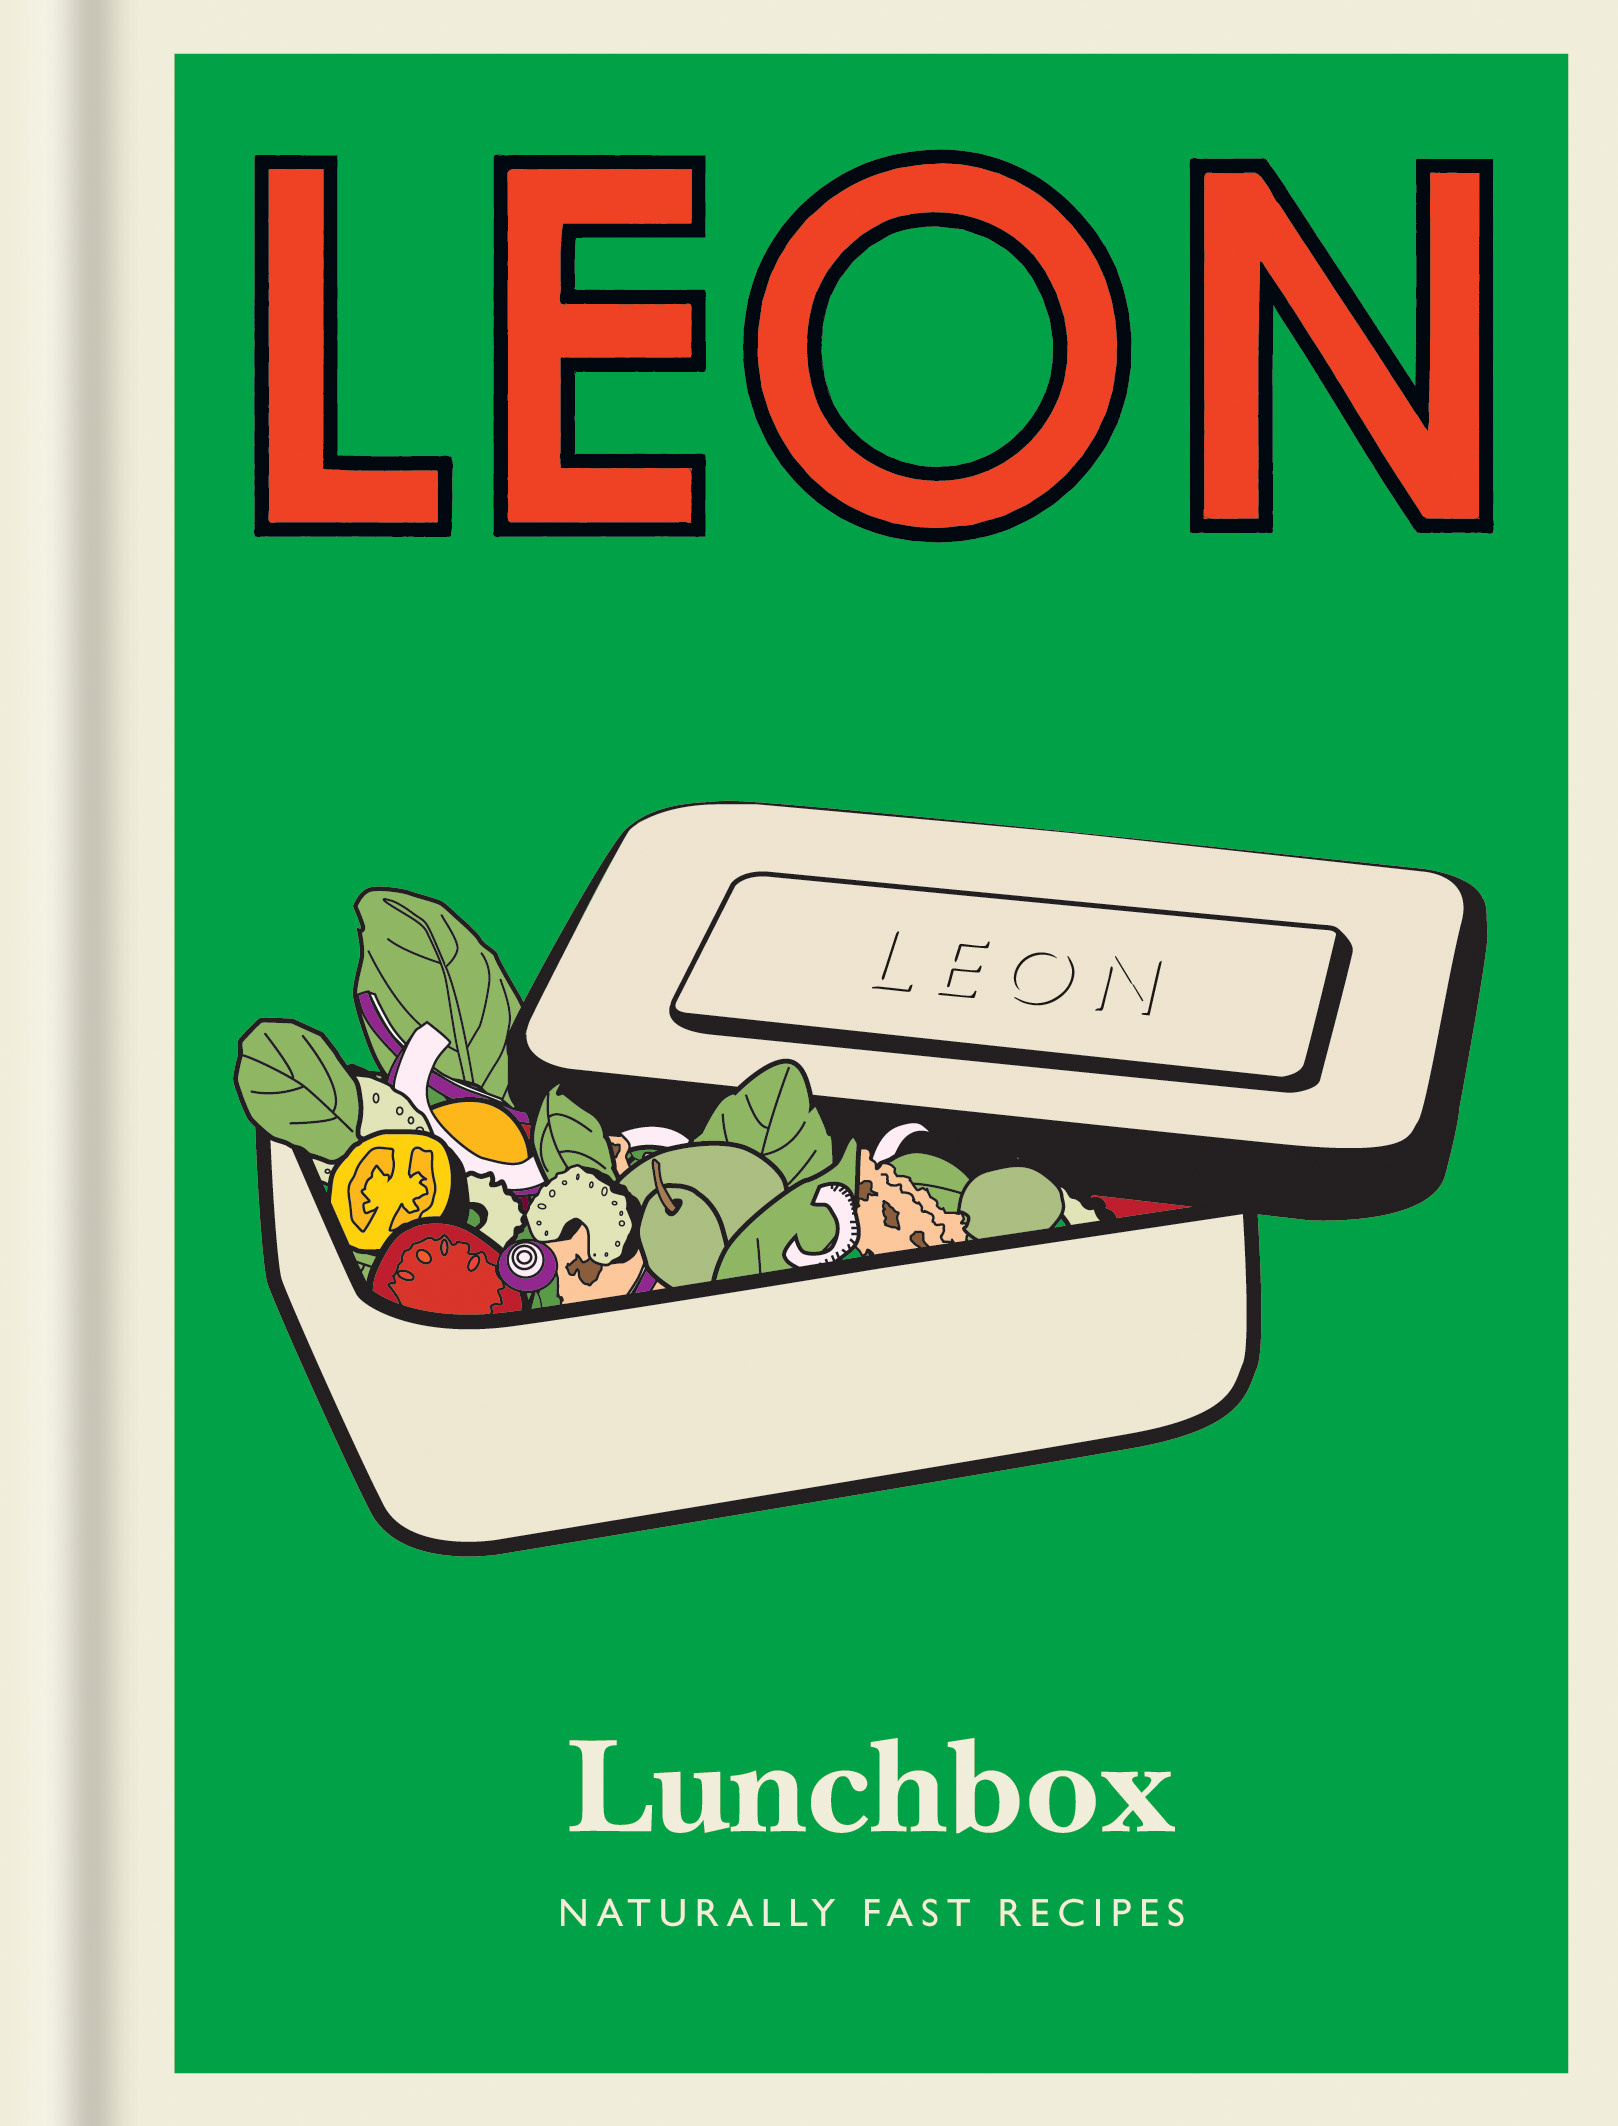 Little Leons Leon Lunchbox Naturally Fast Recipes By